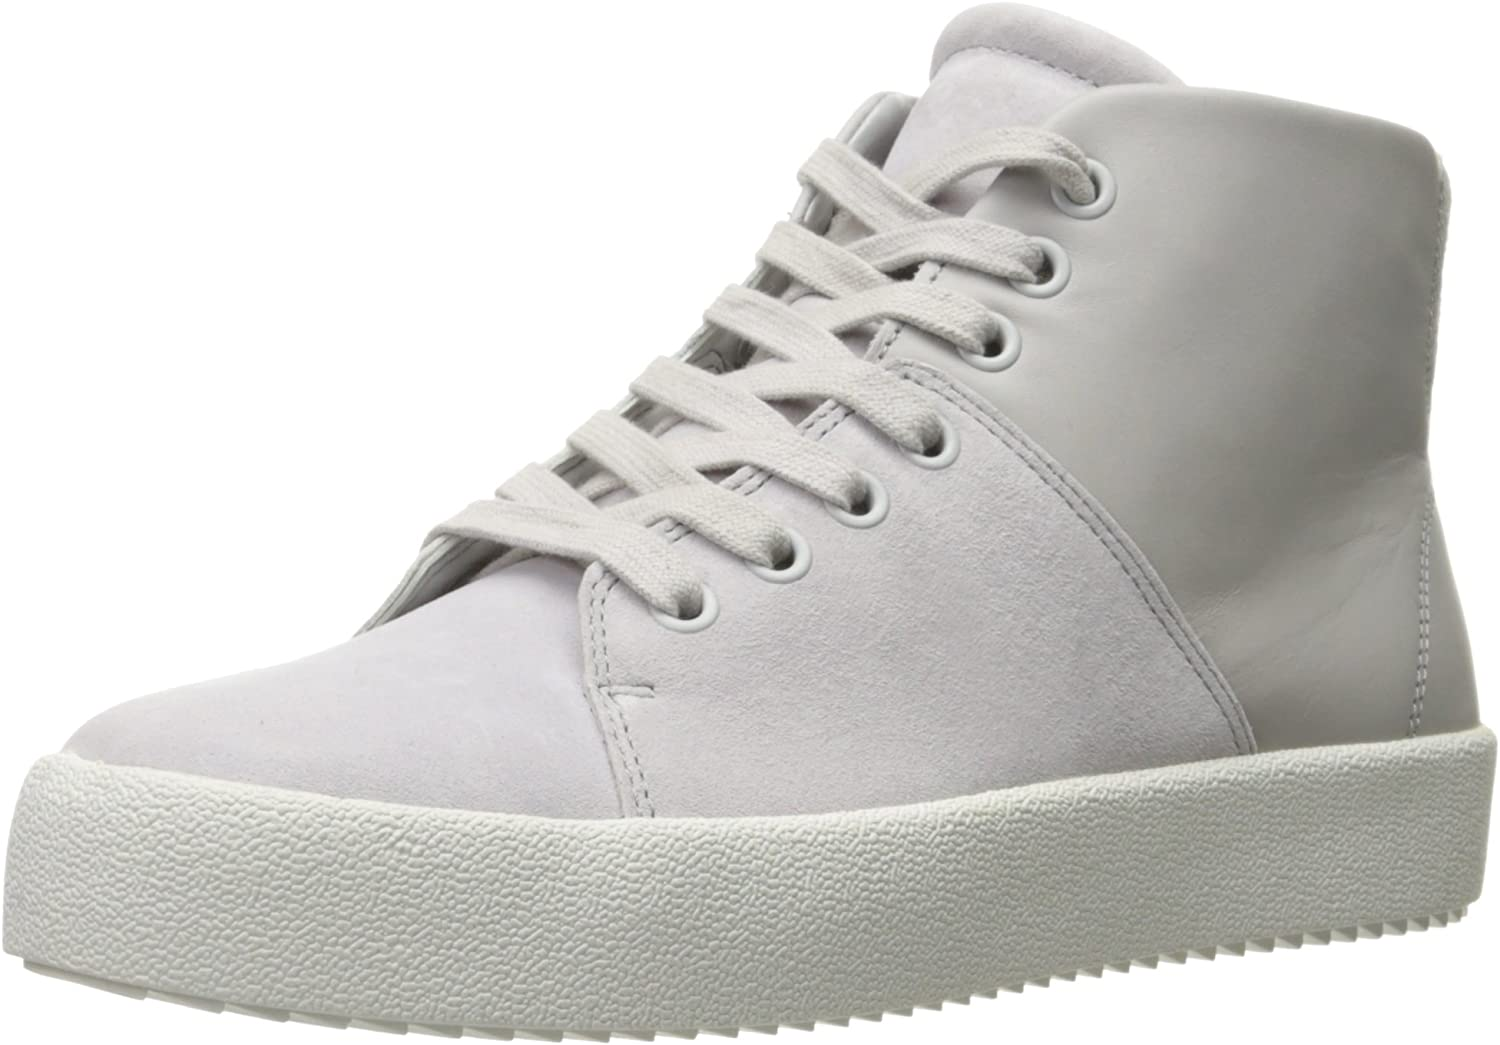 KENDALL + KYLIE Womens Dylan2 Fashion Sneaker